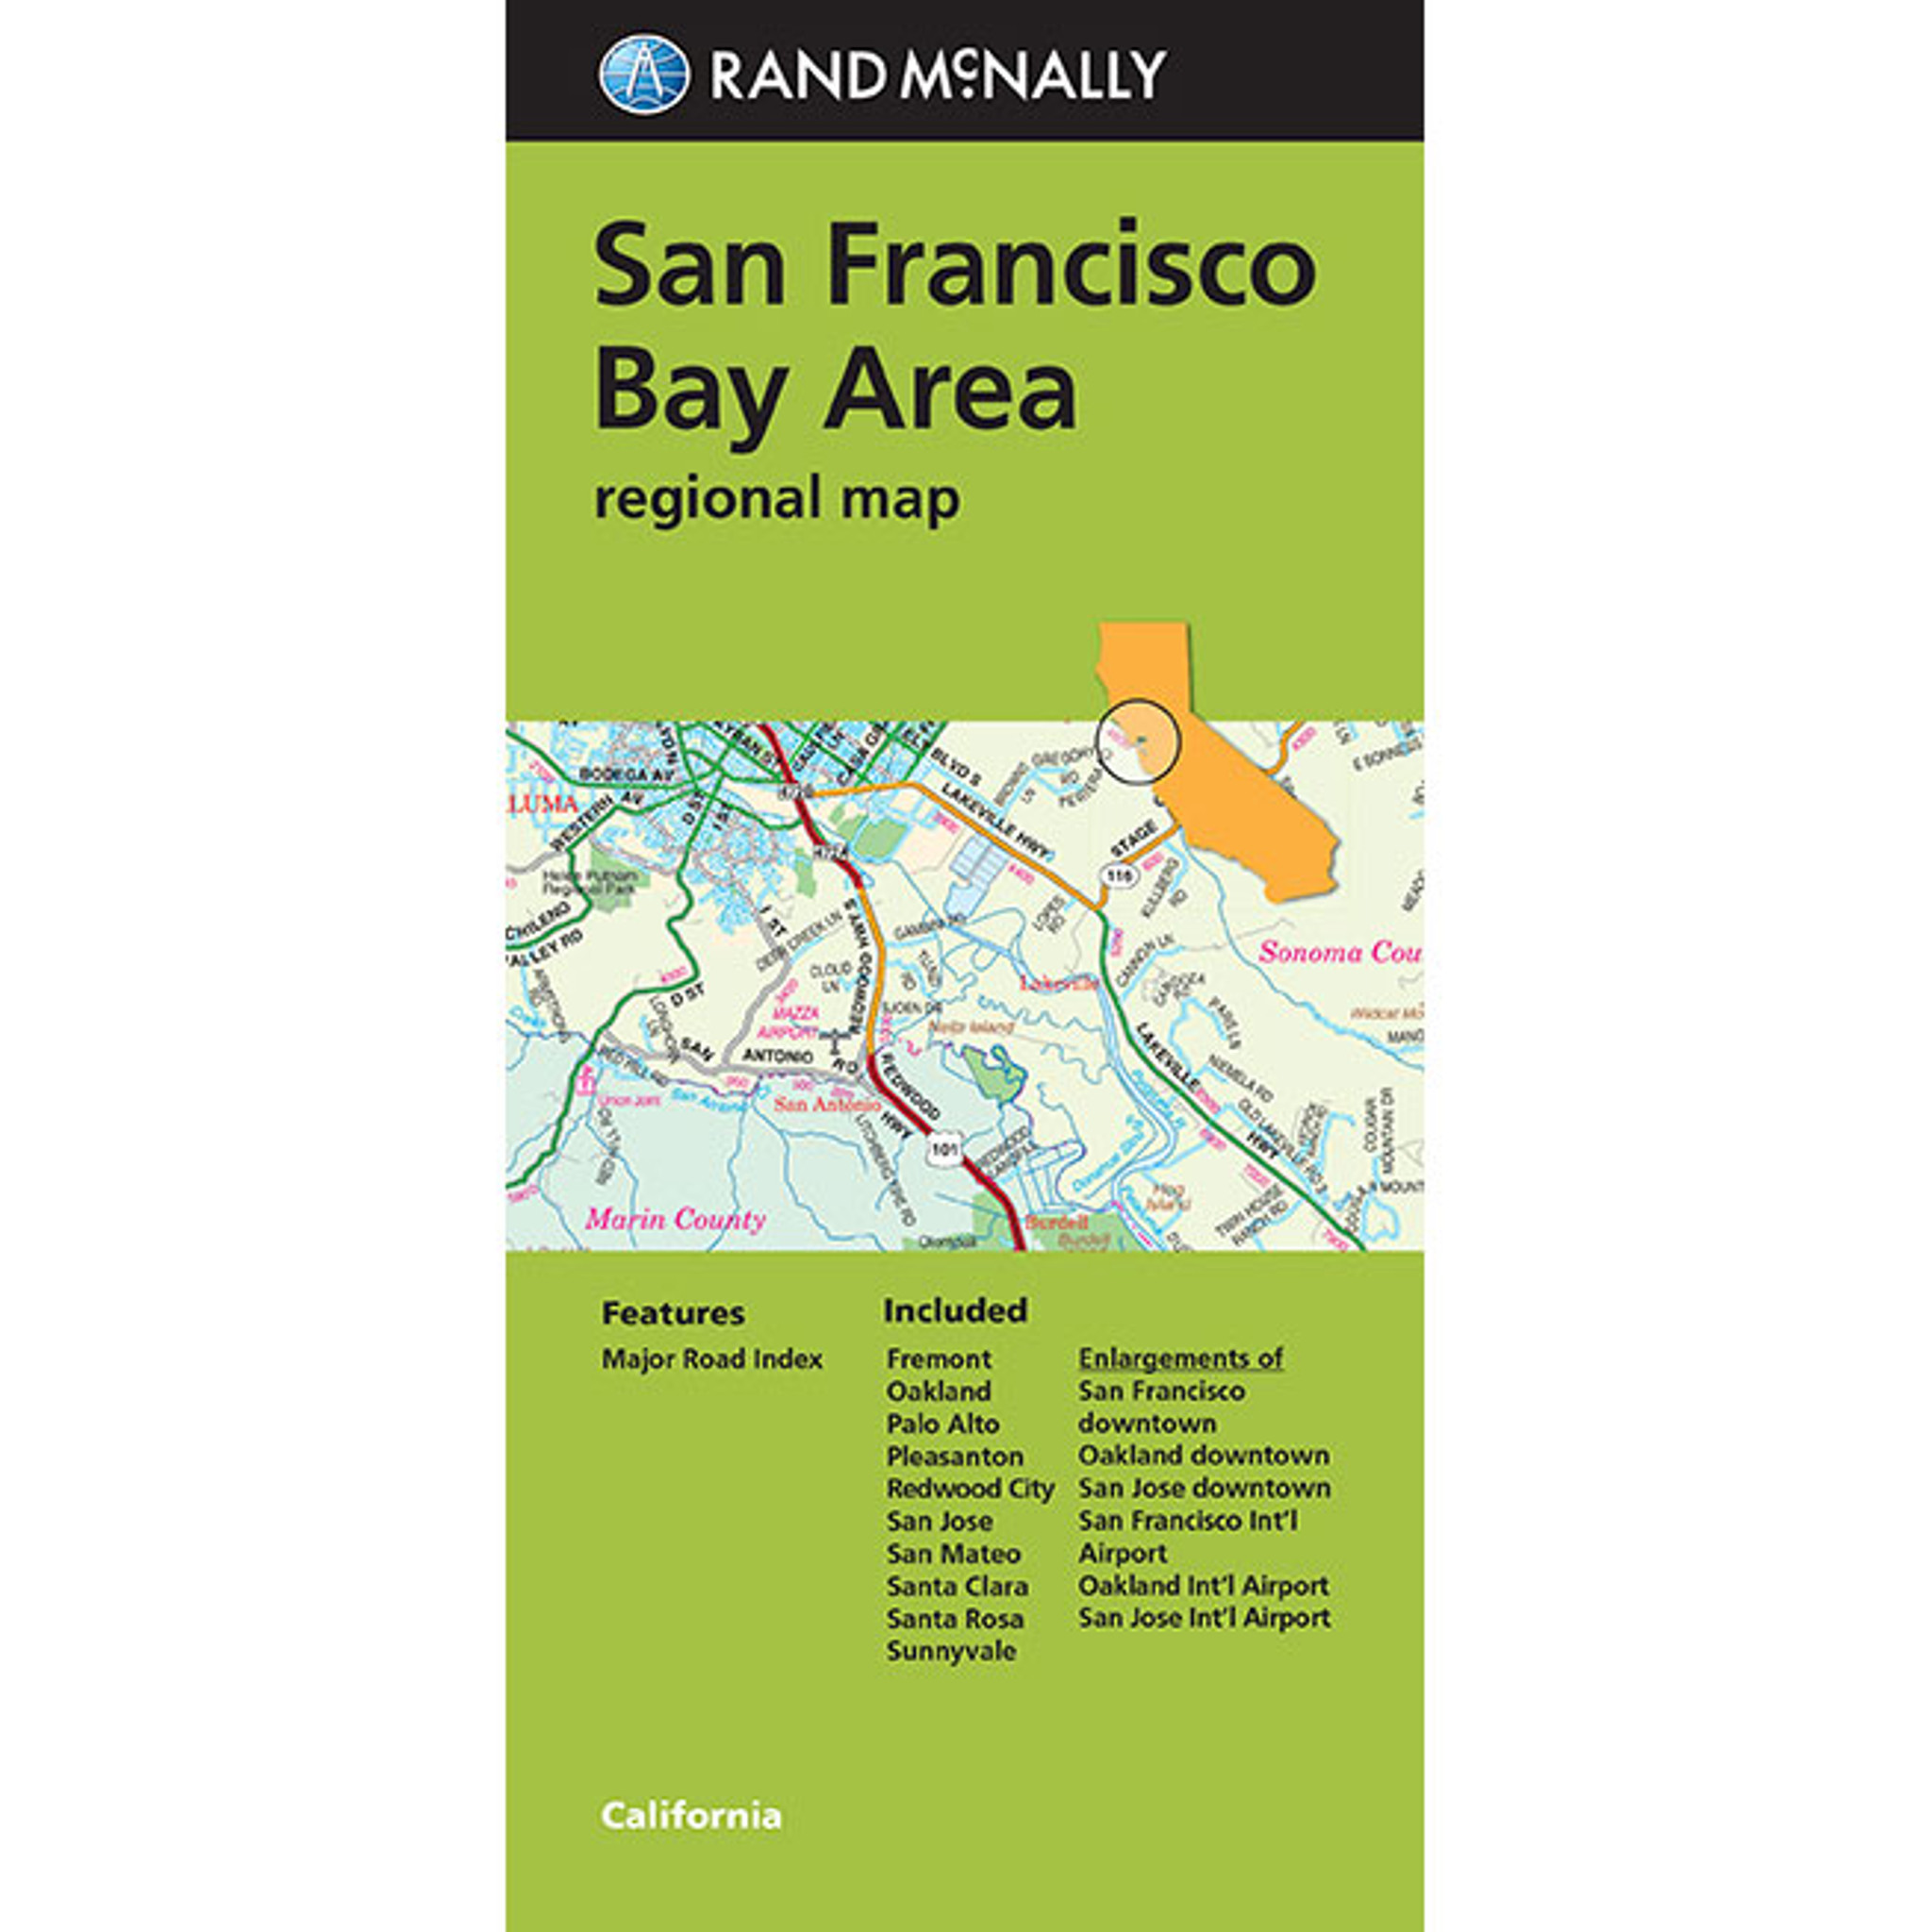 Folded Maps San Francisco They are durable, packed full of information and easy to read. folded map san francisco bay area folded regional map